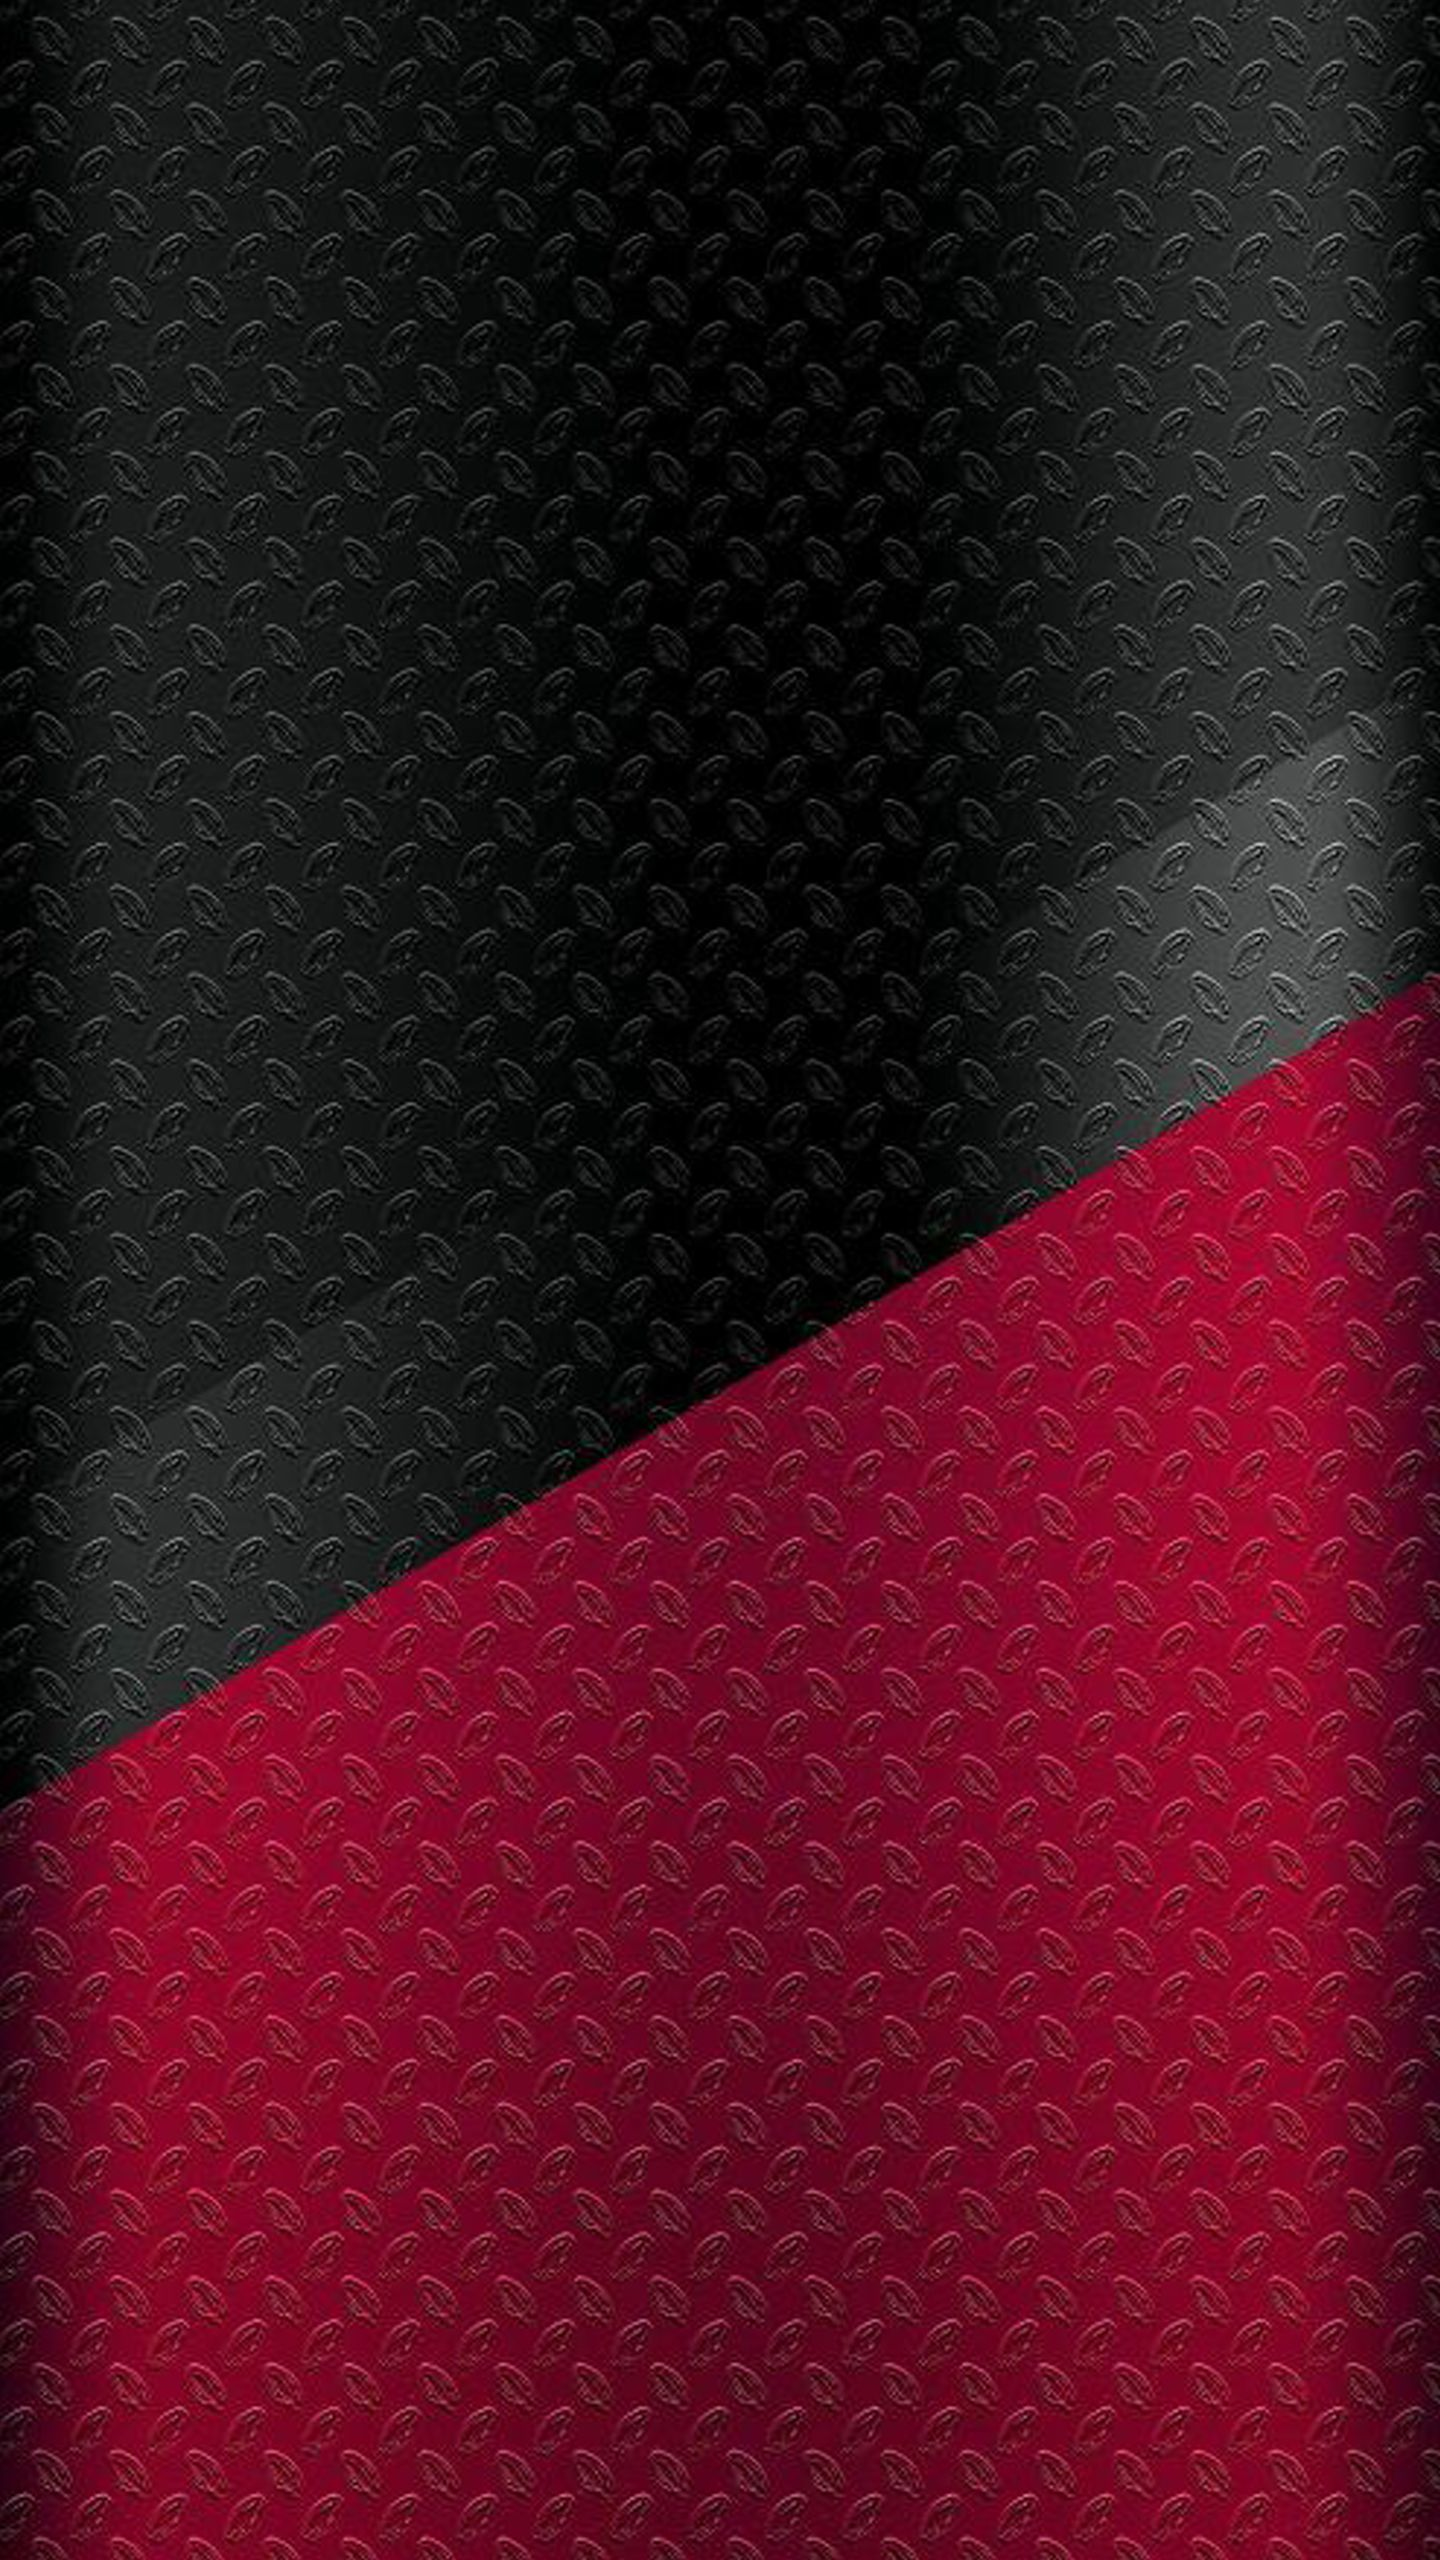 This Black And Red Metal Texture Is The 3d Effect Of The Dark S7 Edge Wallpaper 06 I Use This Wallpaper A Red And Black Wallpaper Metal Texture Wallpaper Edge